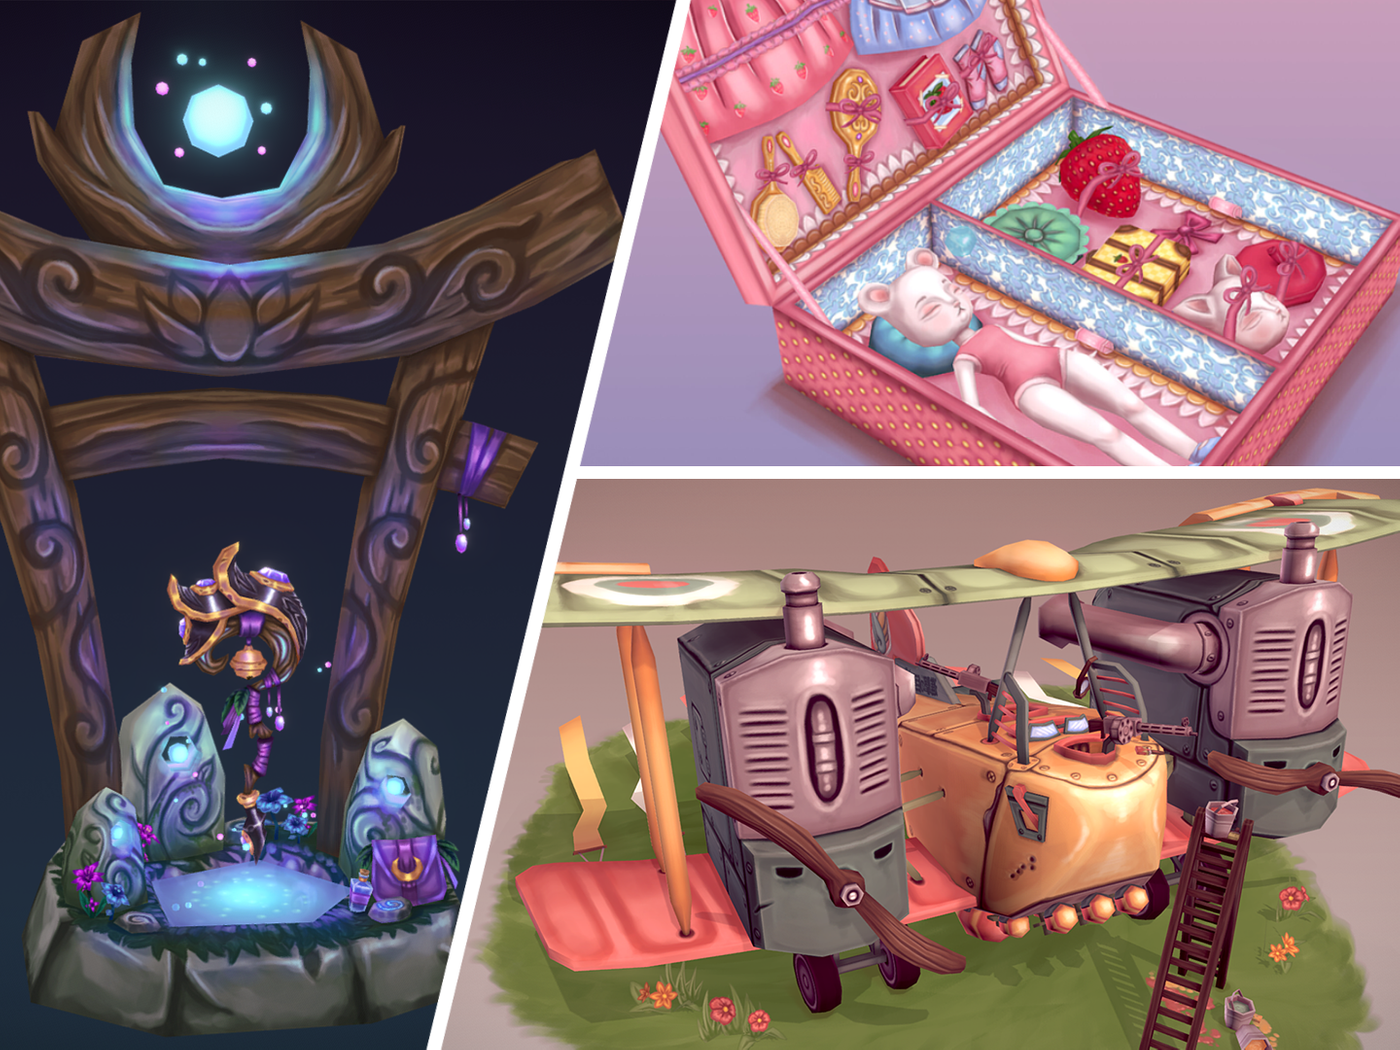 My stylized-handpainted projects!